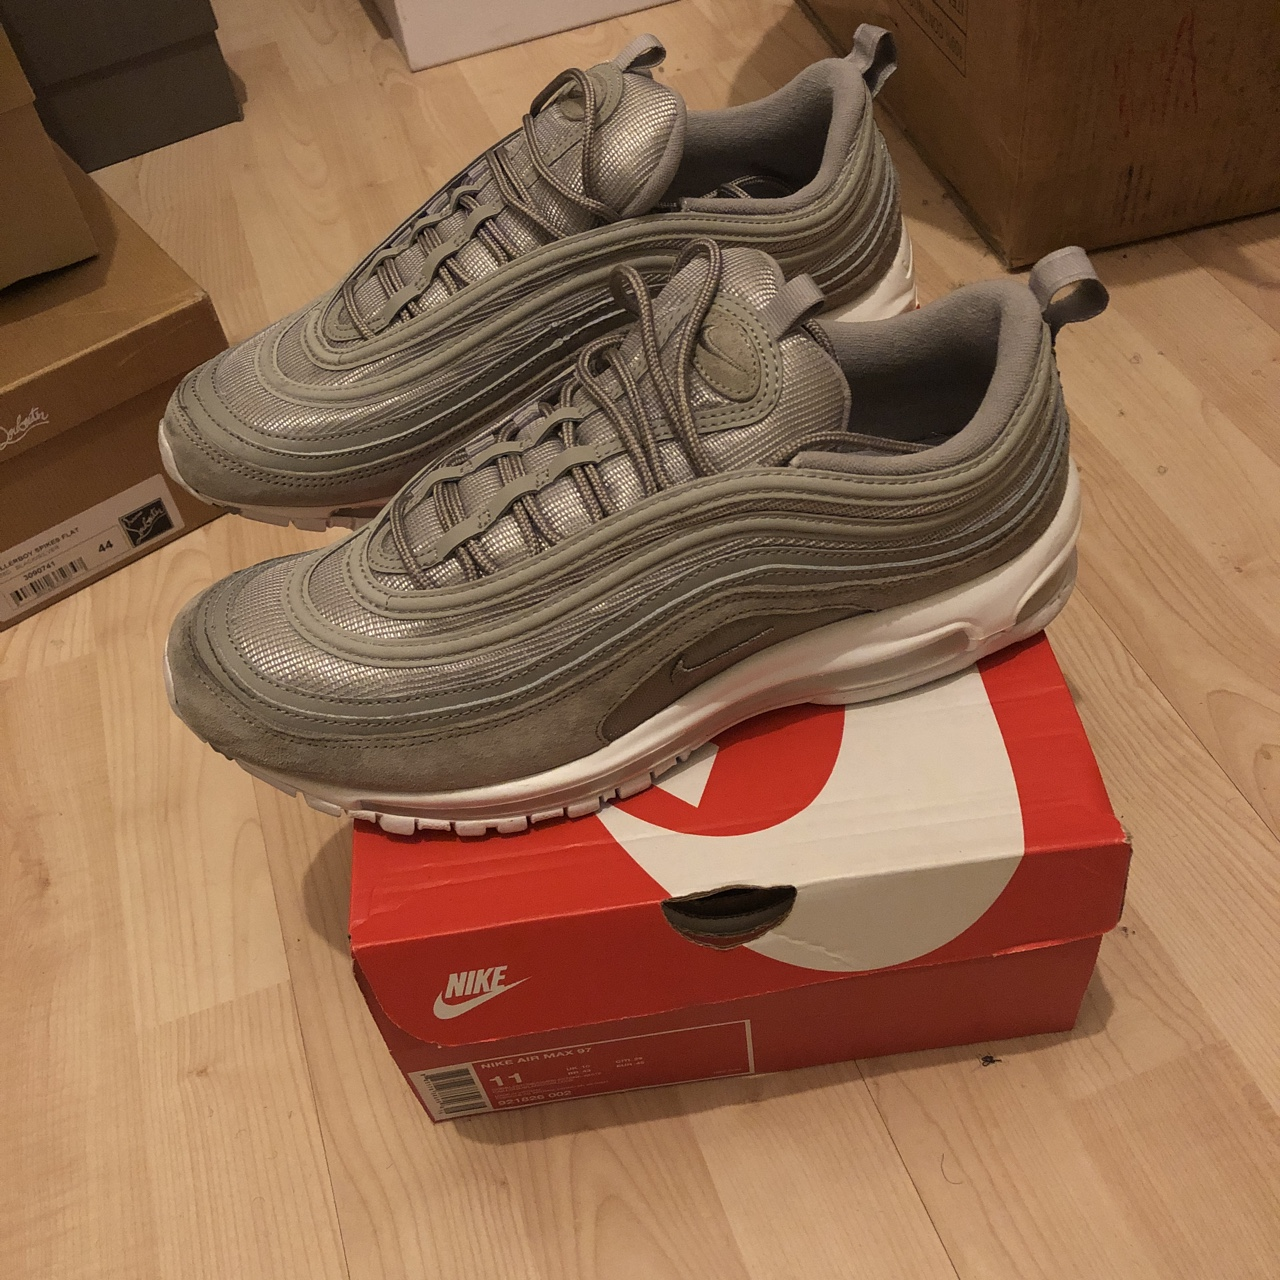 NIKE AIR MAX 97 COBBLESTONE WHITE EXCELLENT Depop